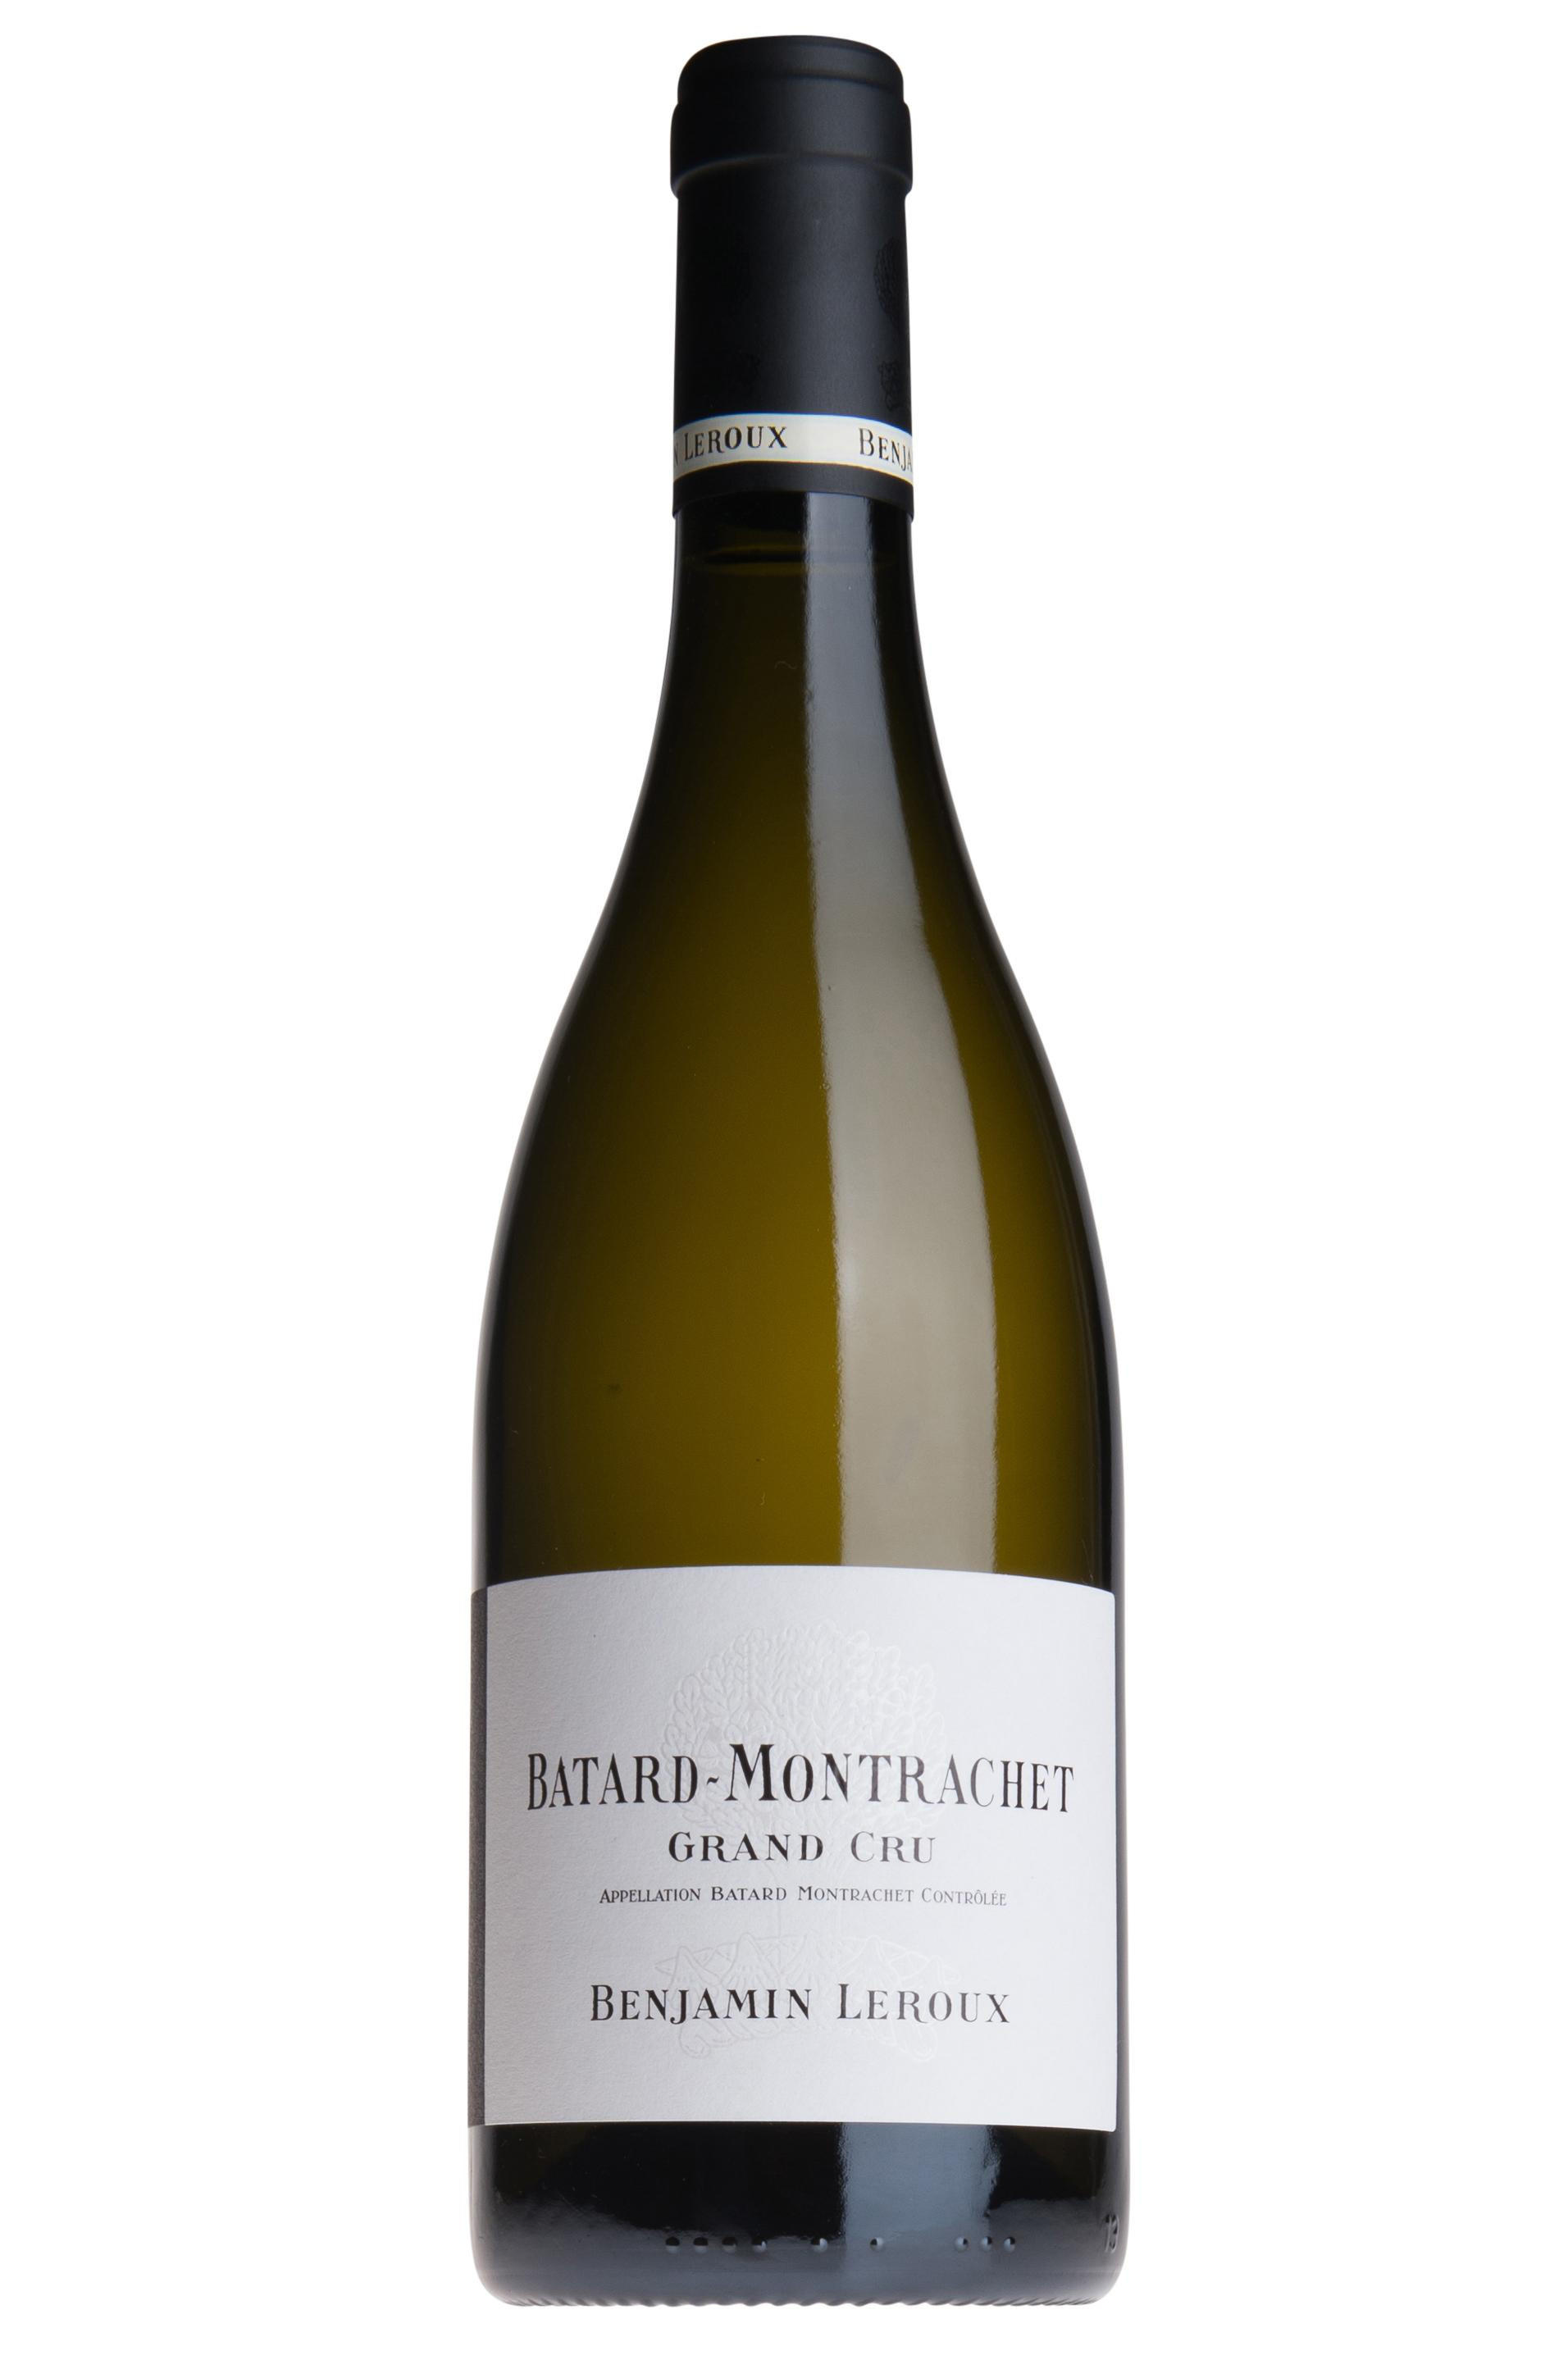 Buy 2016 Bâtard Montrachet Grand Cru Benjamin Leroux Wine Berry Bros Rudd